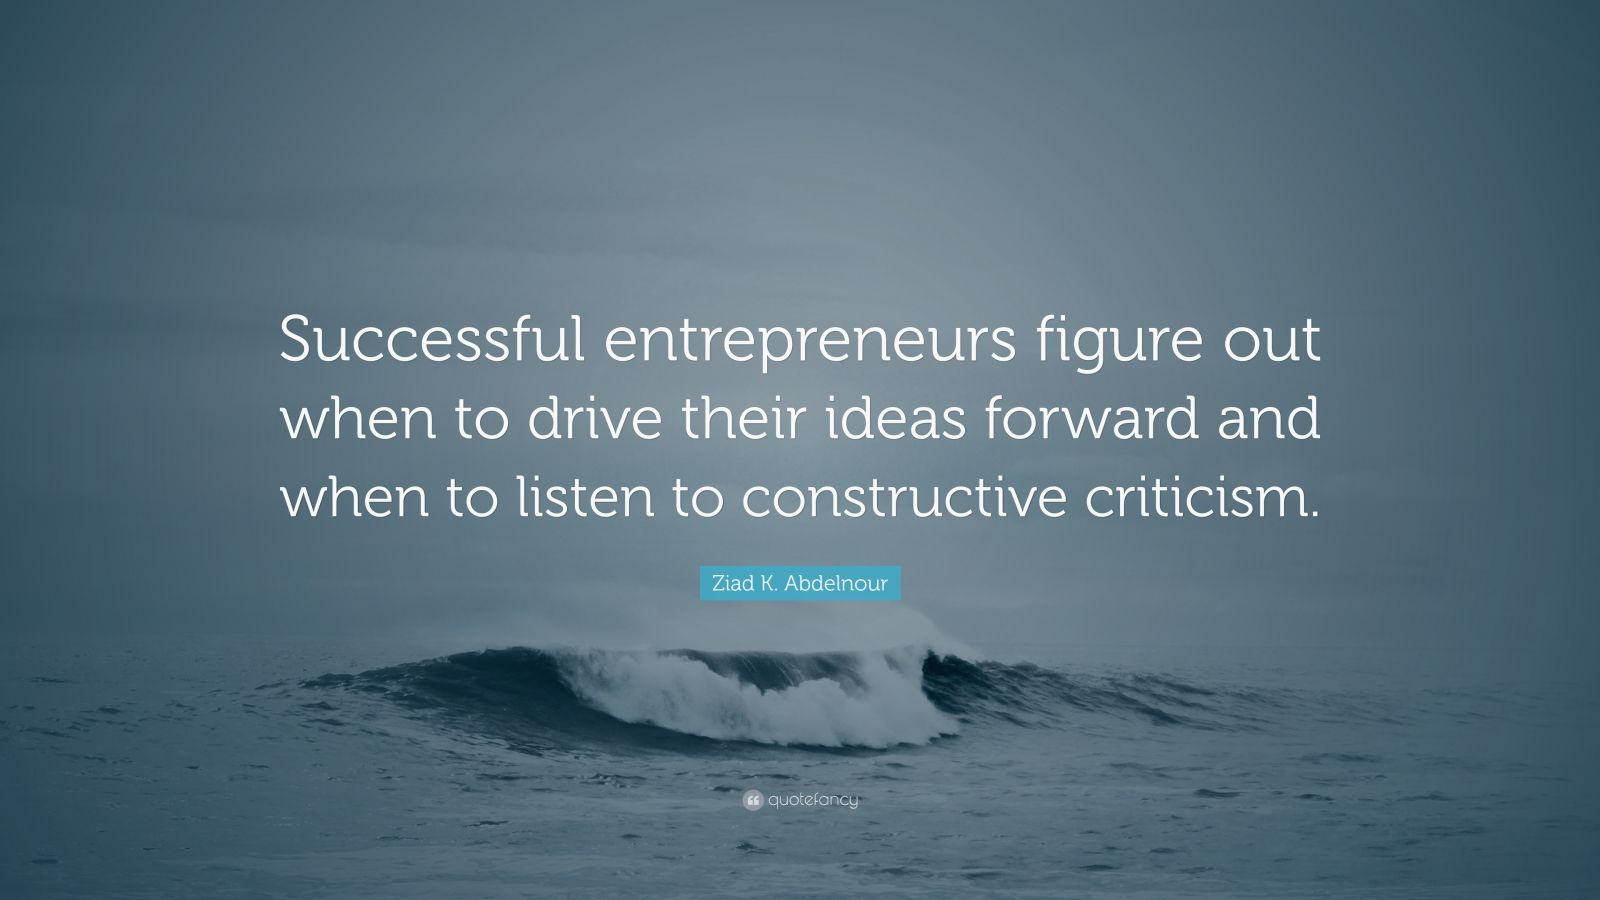 """Ziad K. Abdelnour Quote: """"Successful entrepreneurs figure out when to drive their ideas forward and when to listen to constructive criticism."""""""